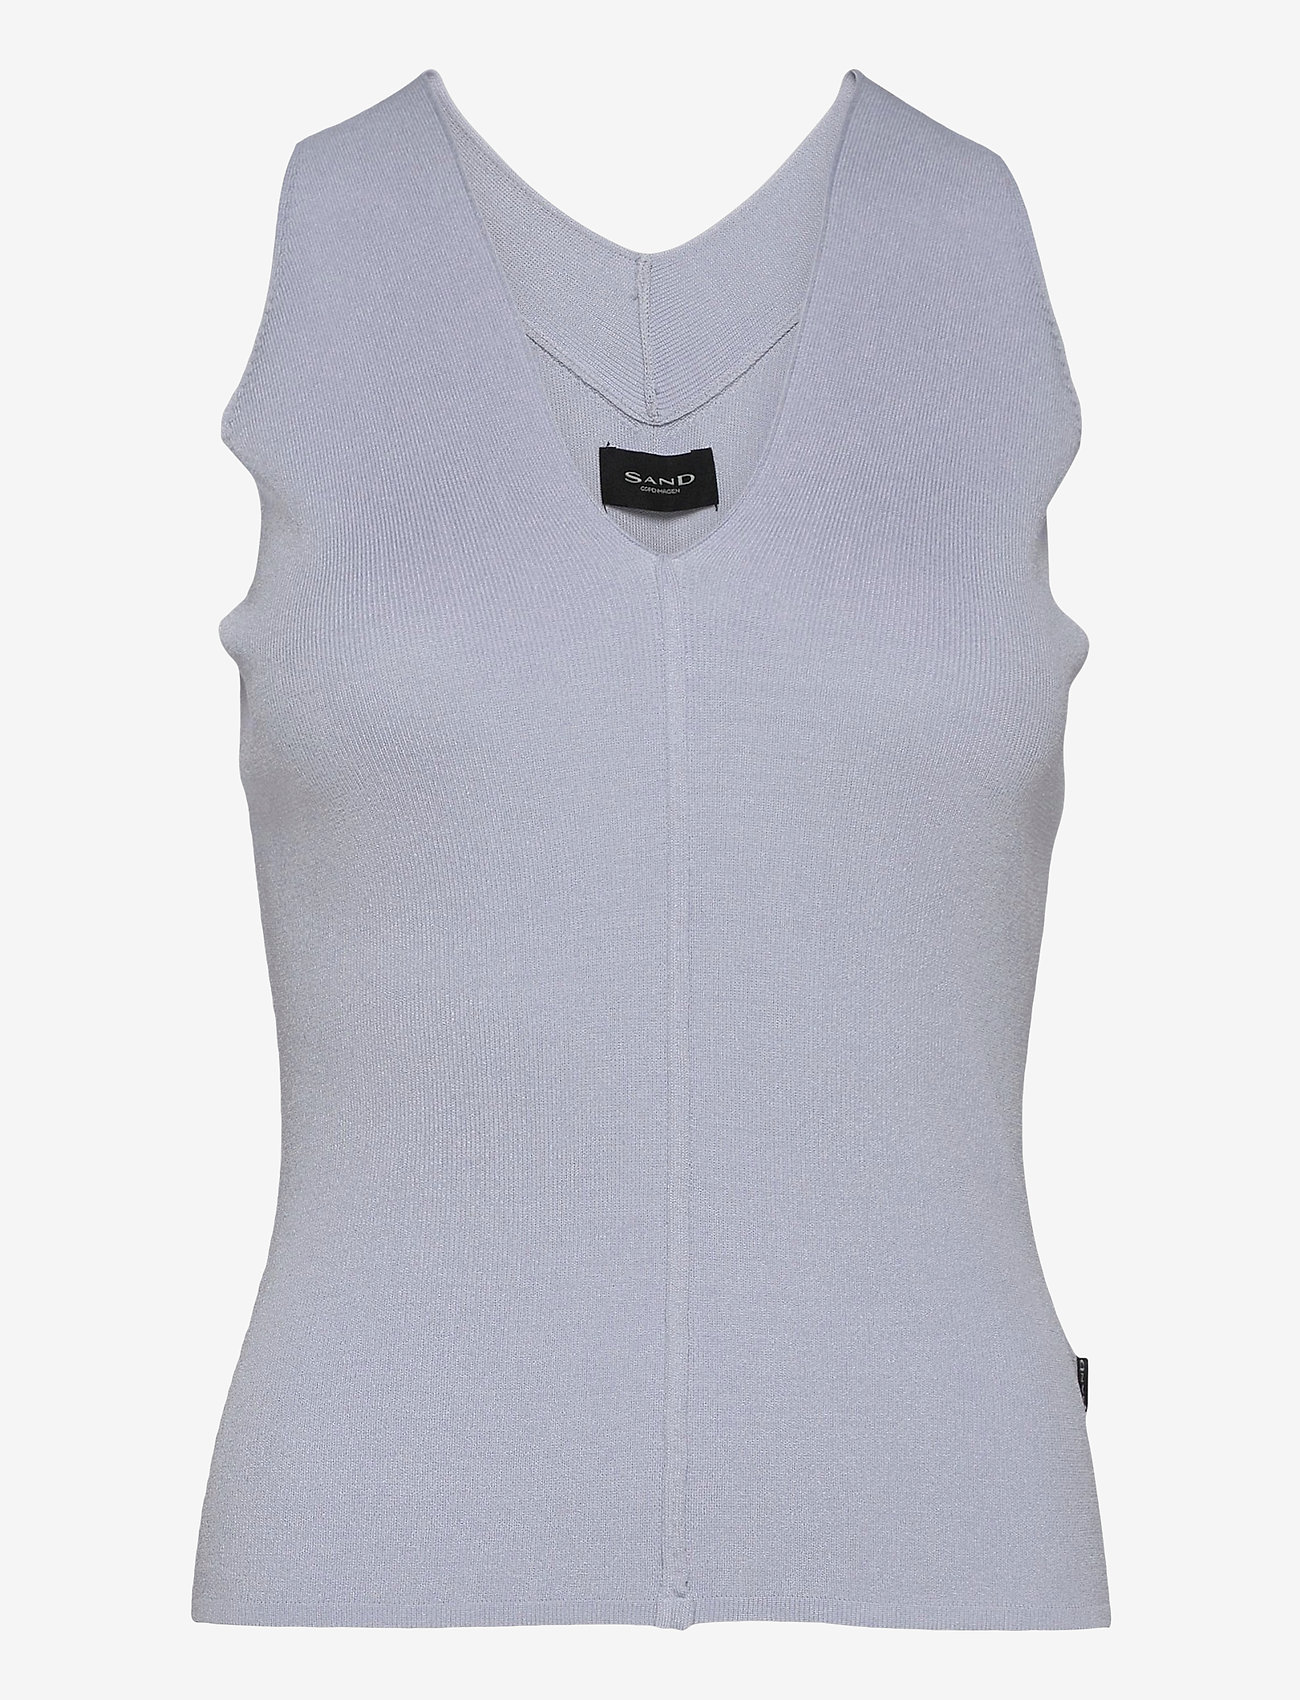 SAND - 5181 - Barney - knitted vests - ice blue - 0